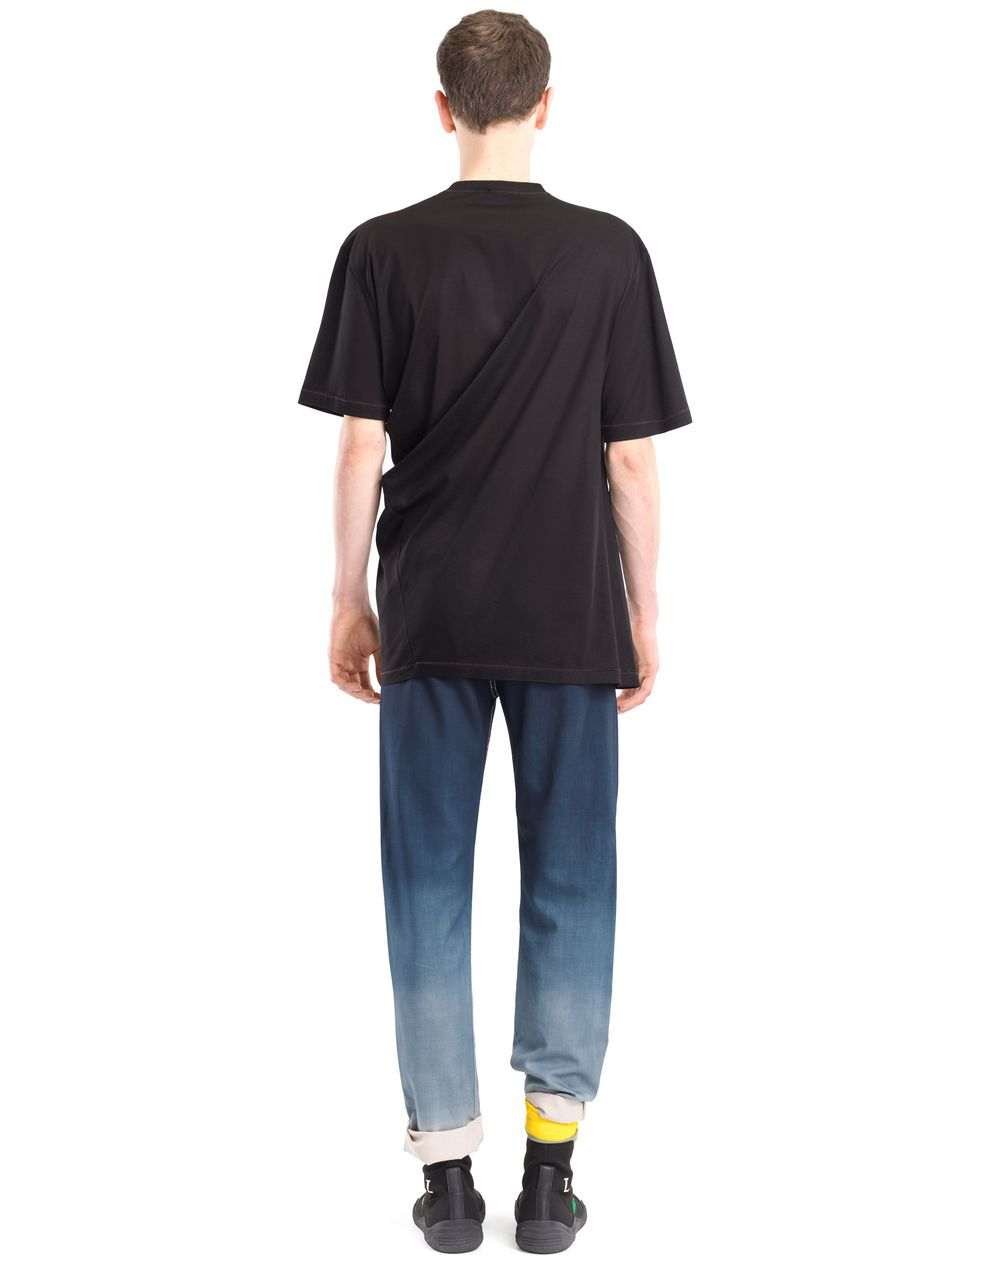 "TWISTED ""UTOPIA"" T-SHIRT - Lanvin"